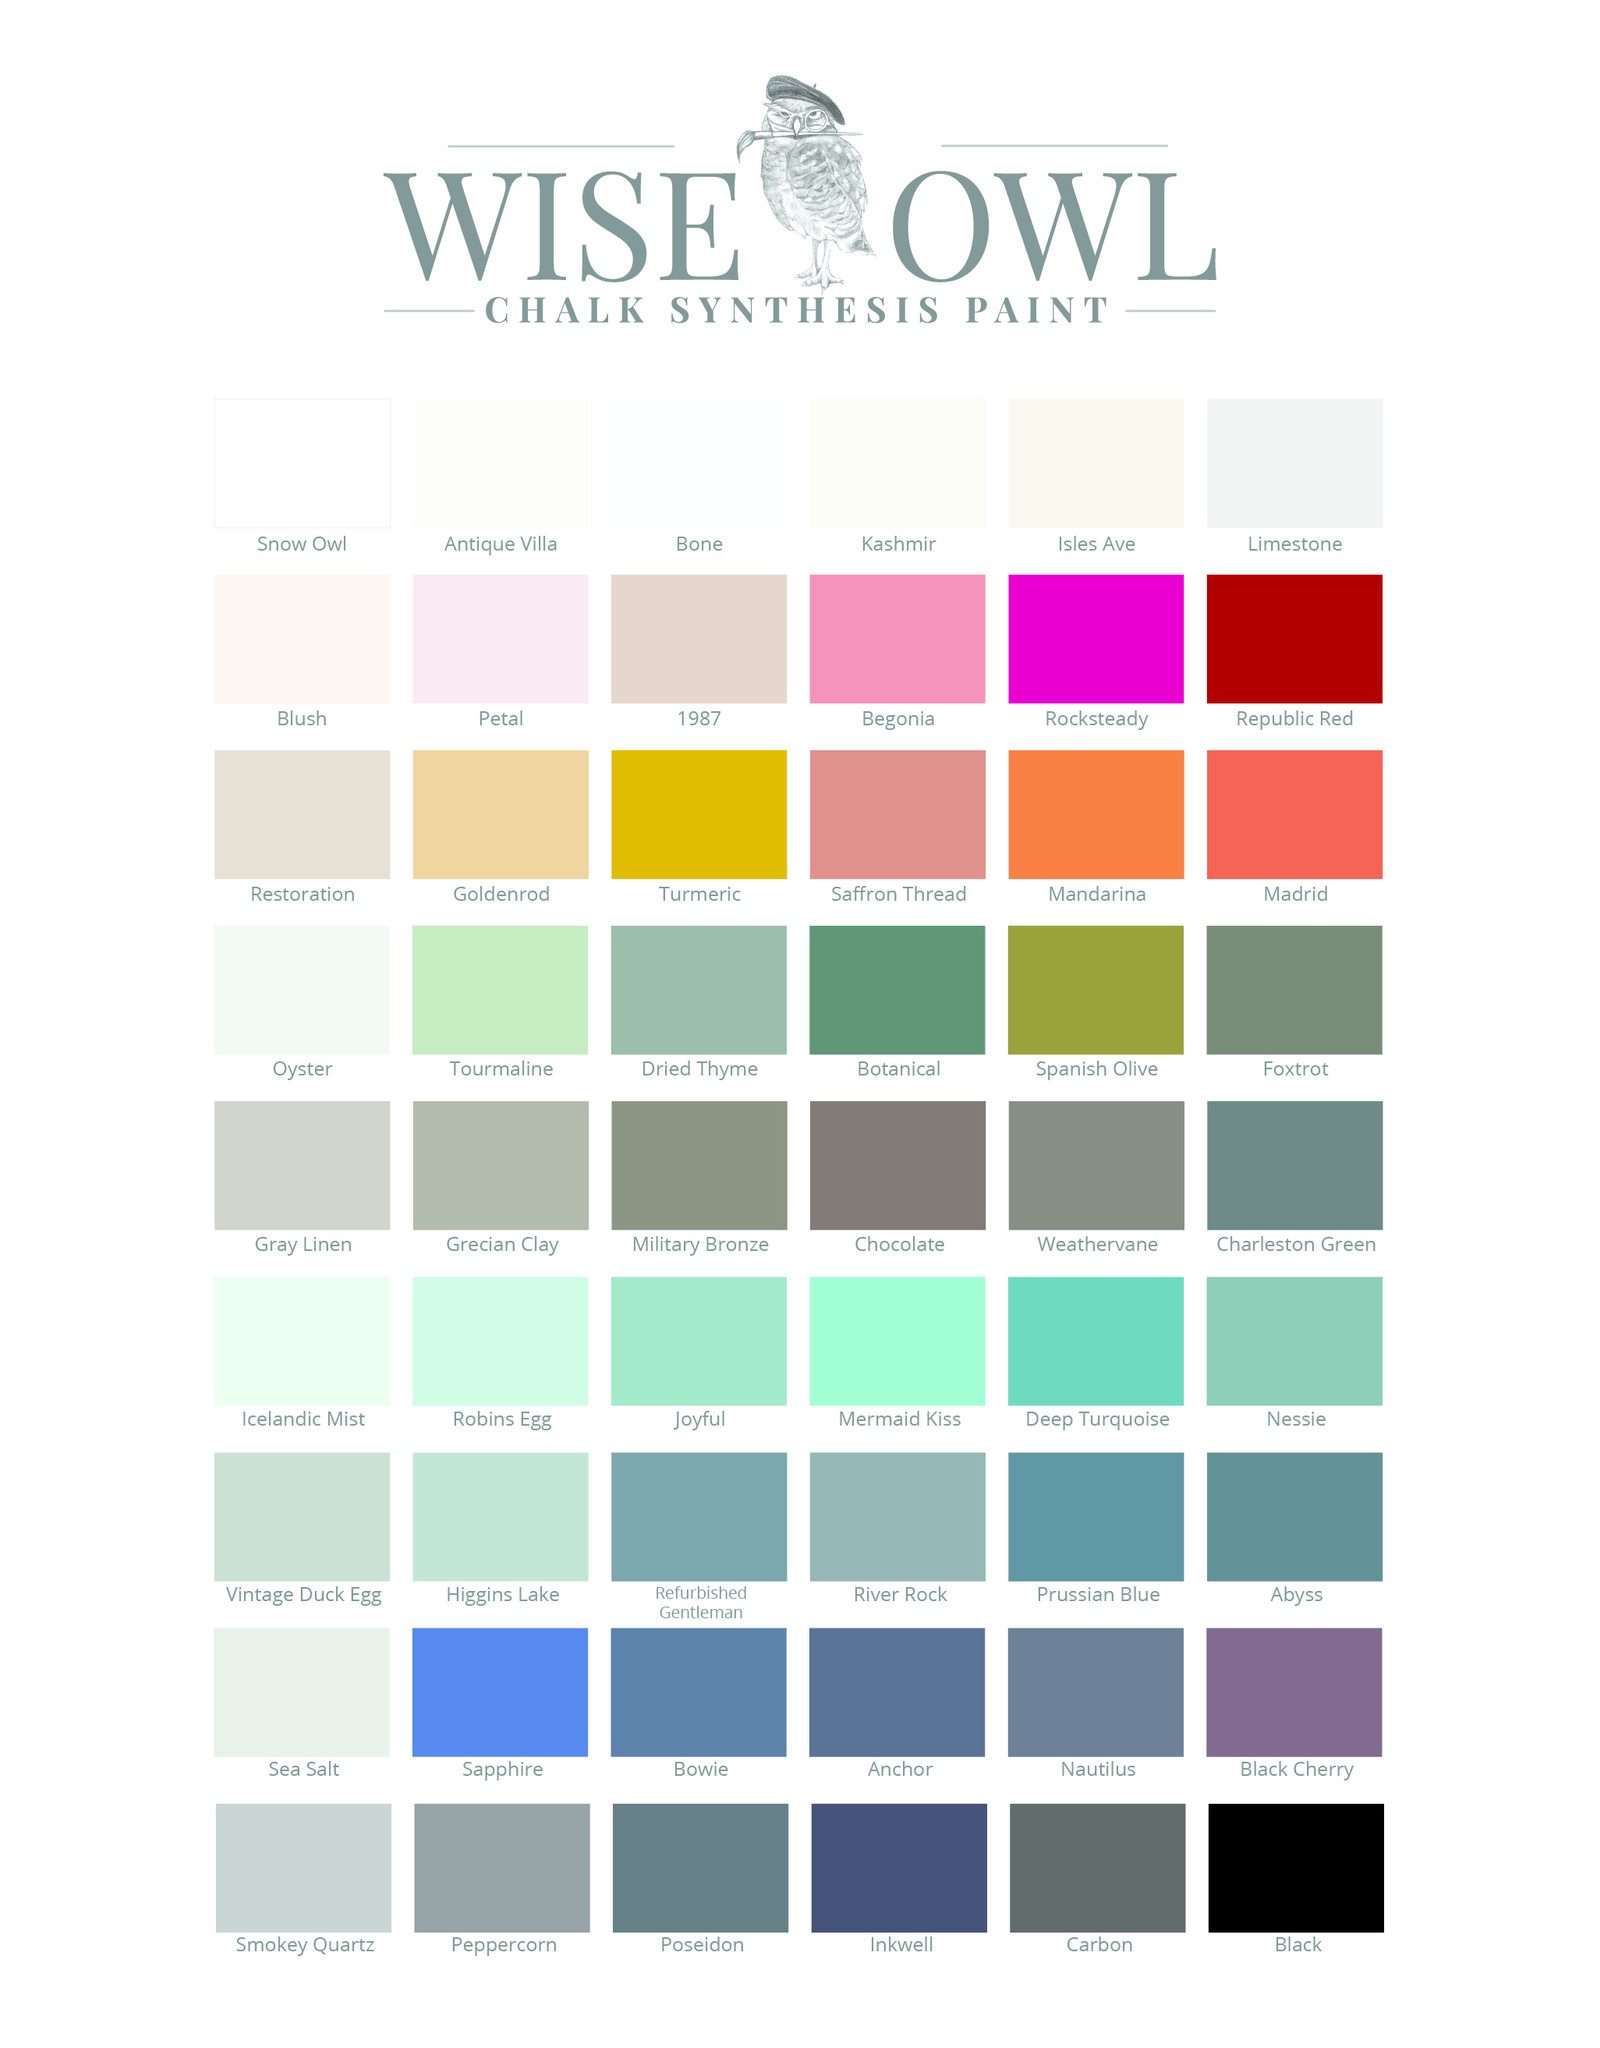 Wise Owl Paint Chalk Synthesis Paint-Military Bronze Pint